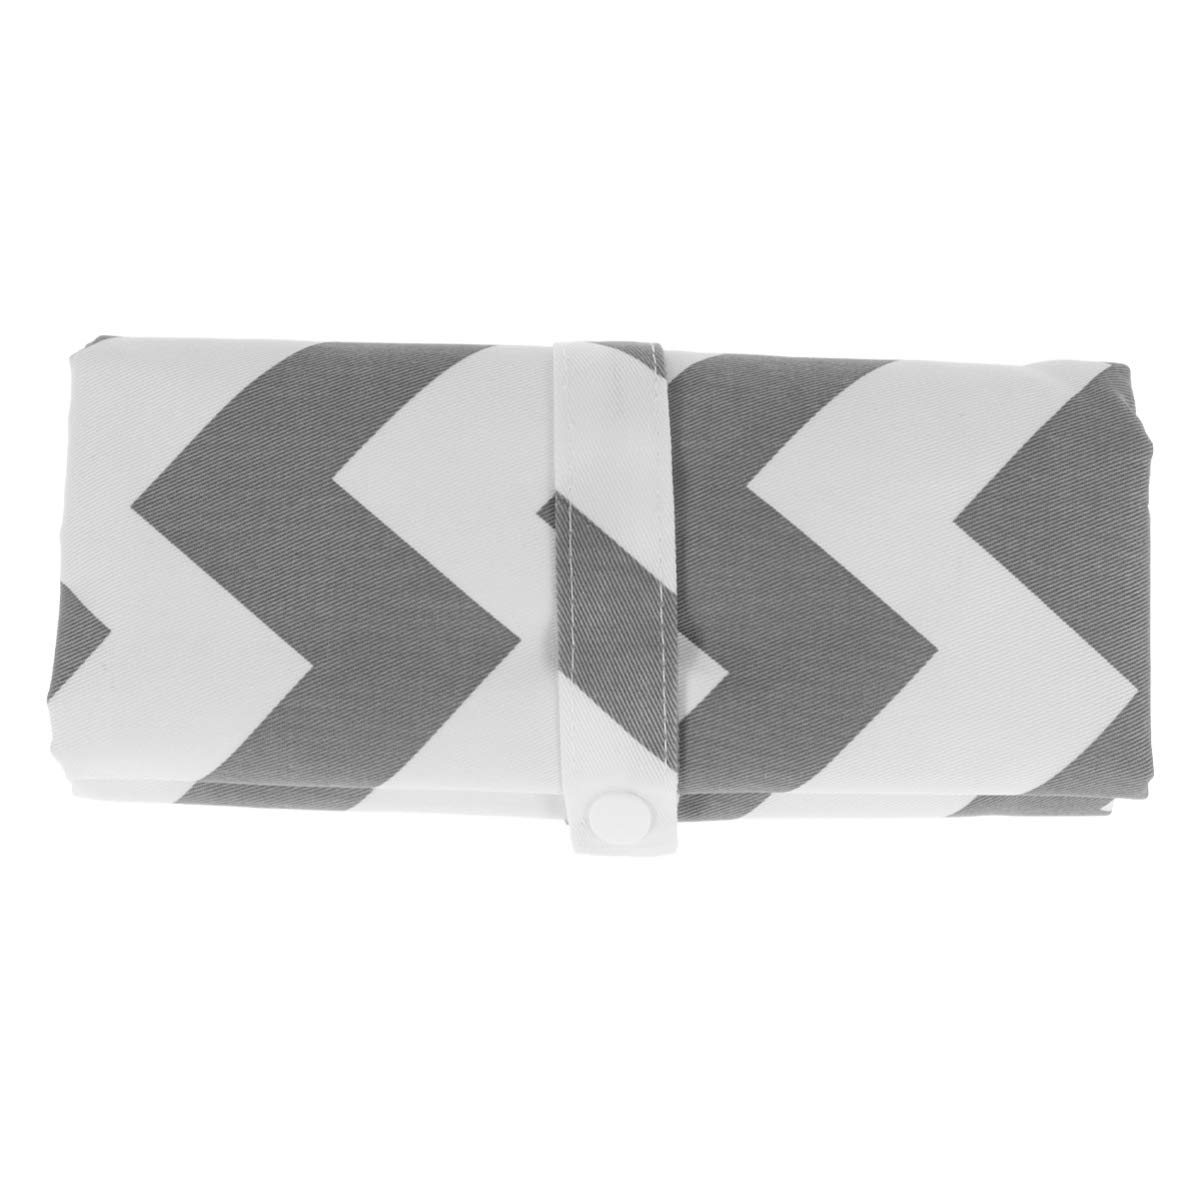 SUPVOX Cotton Nappy Changing Mat Waterproof Diaper Changing Pad Foldable Baby Urinal Pad for Travel Outside (Wave Grey)